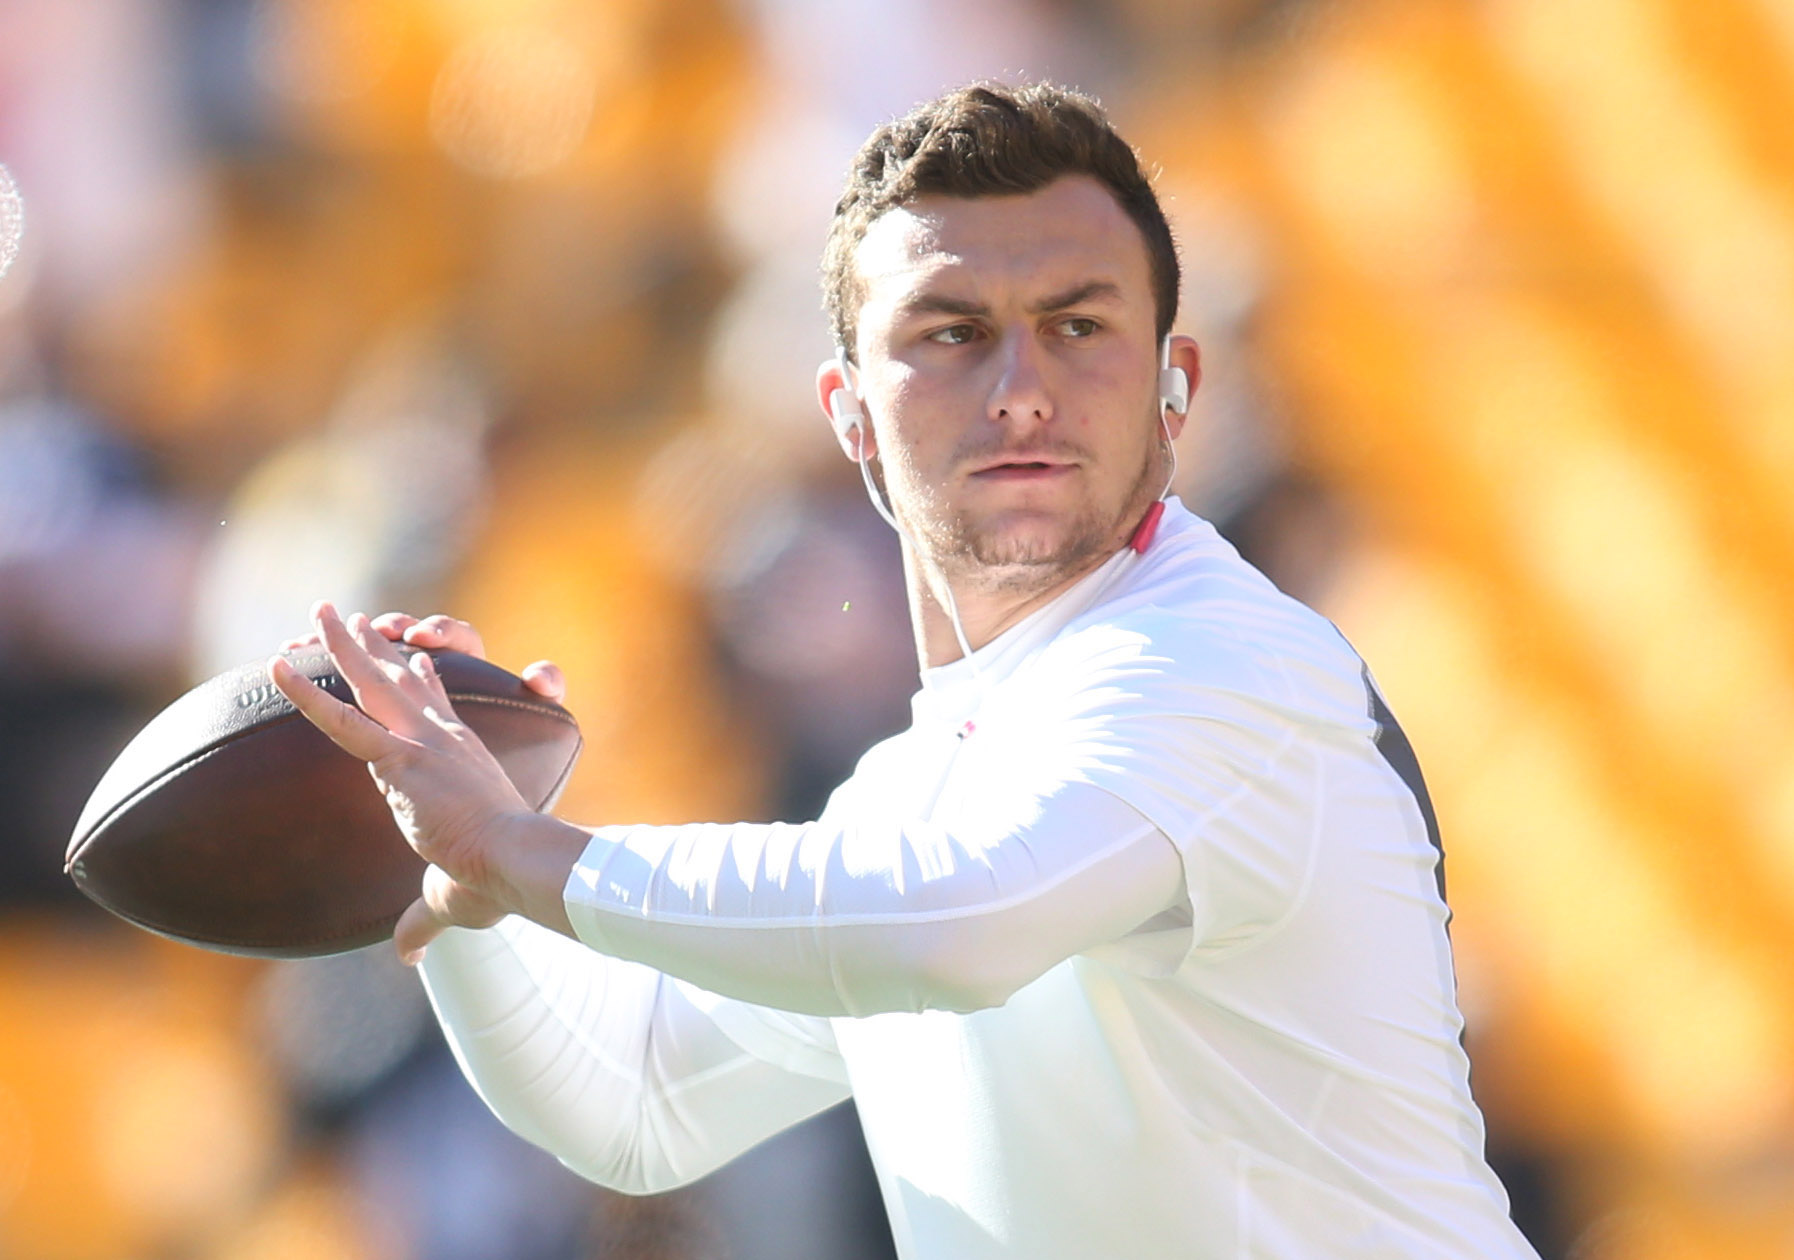 ComebackSZN: Johnny Manziel is poised to prove the haters wrong